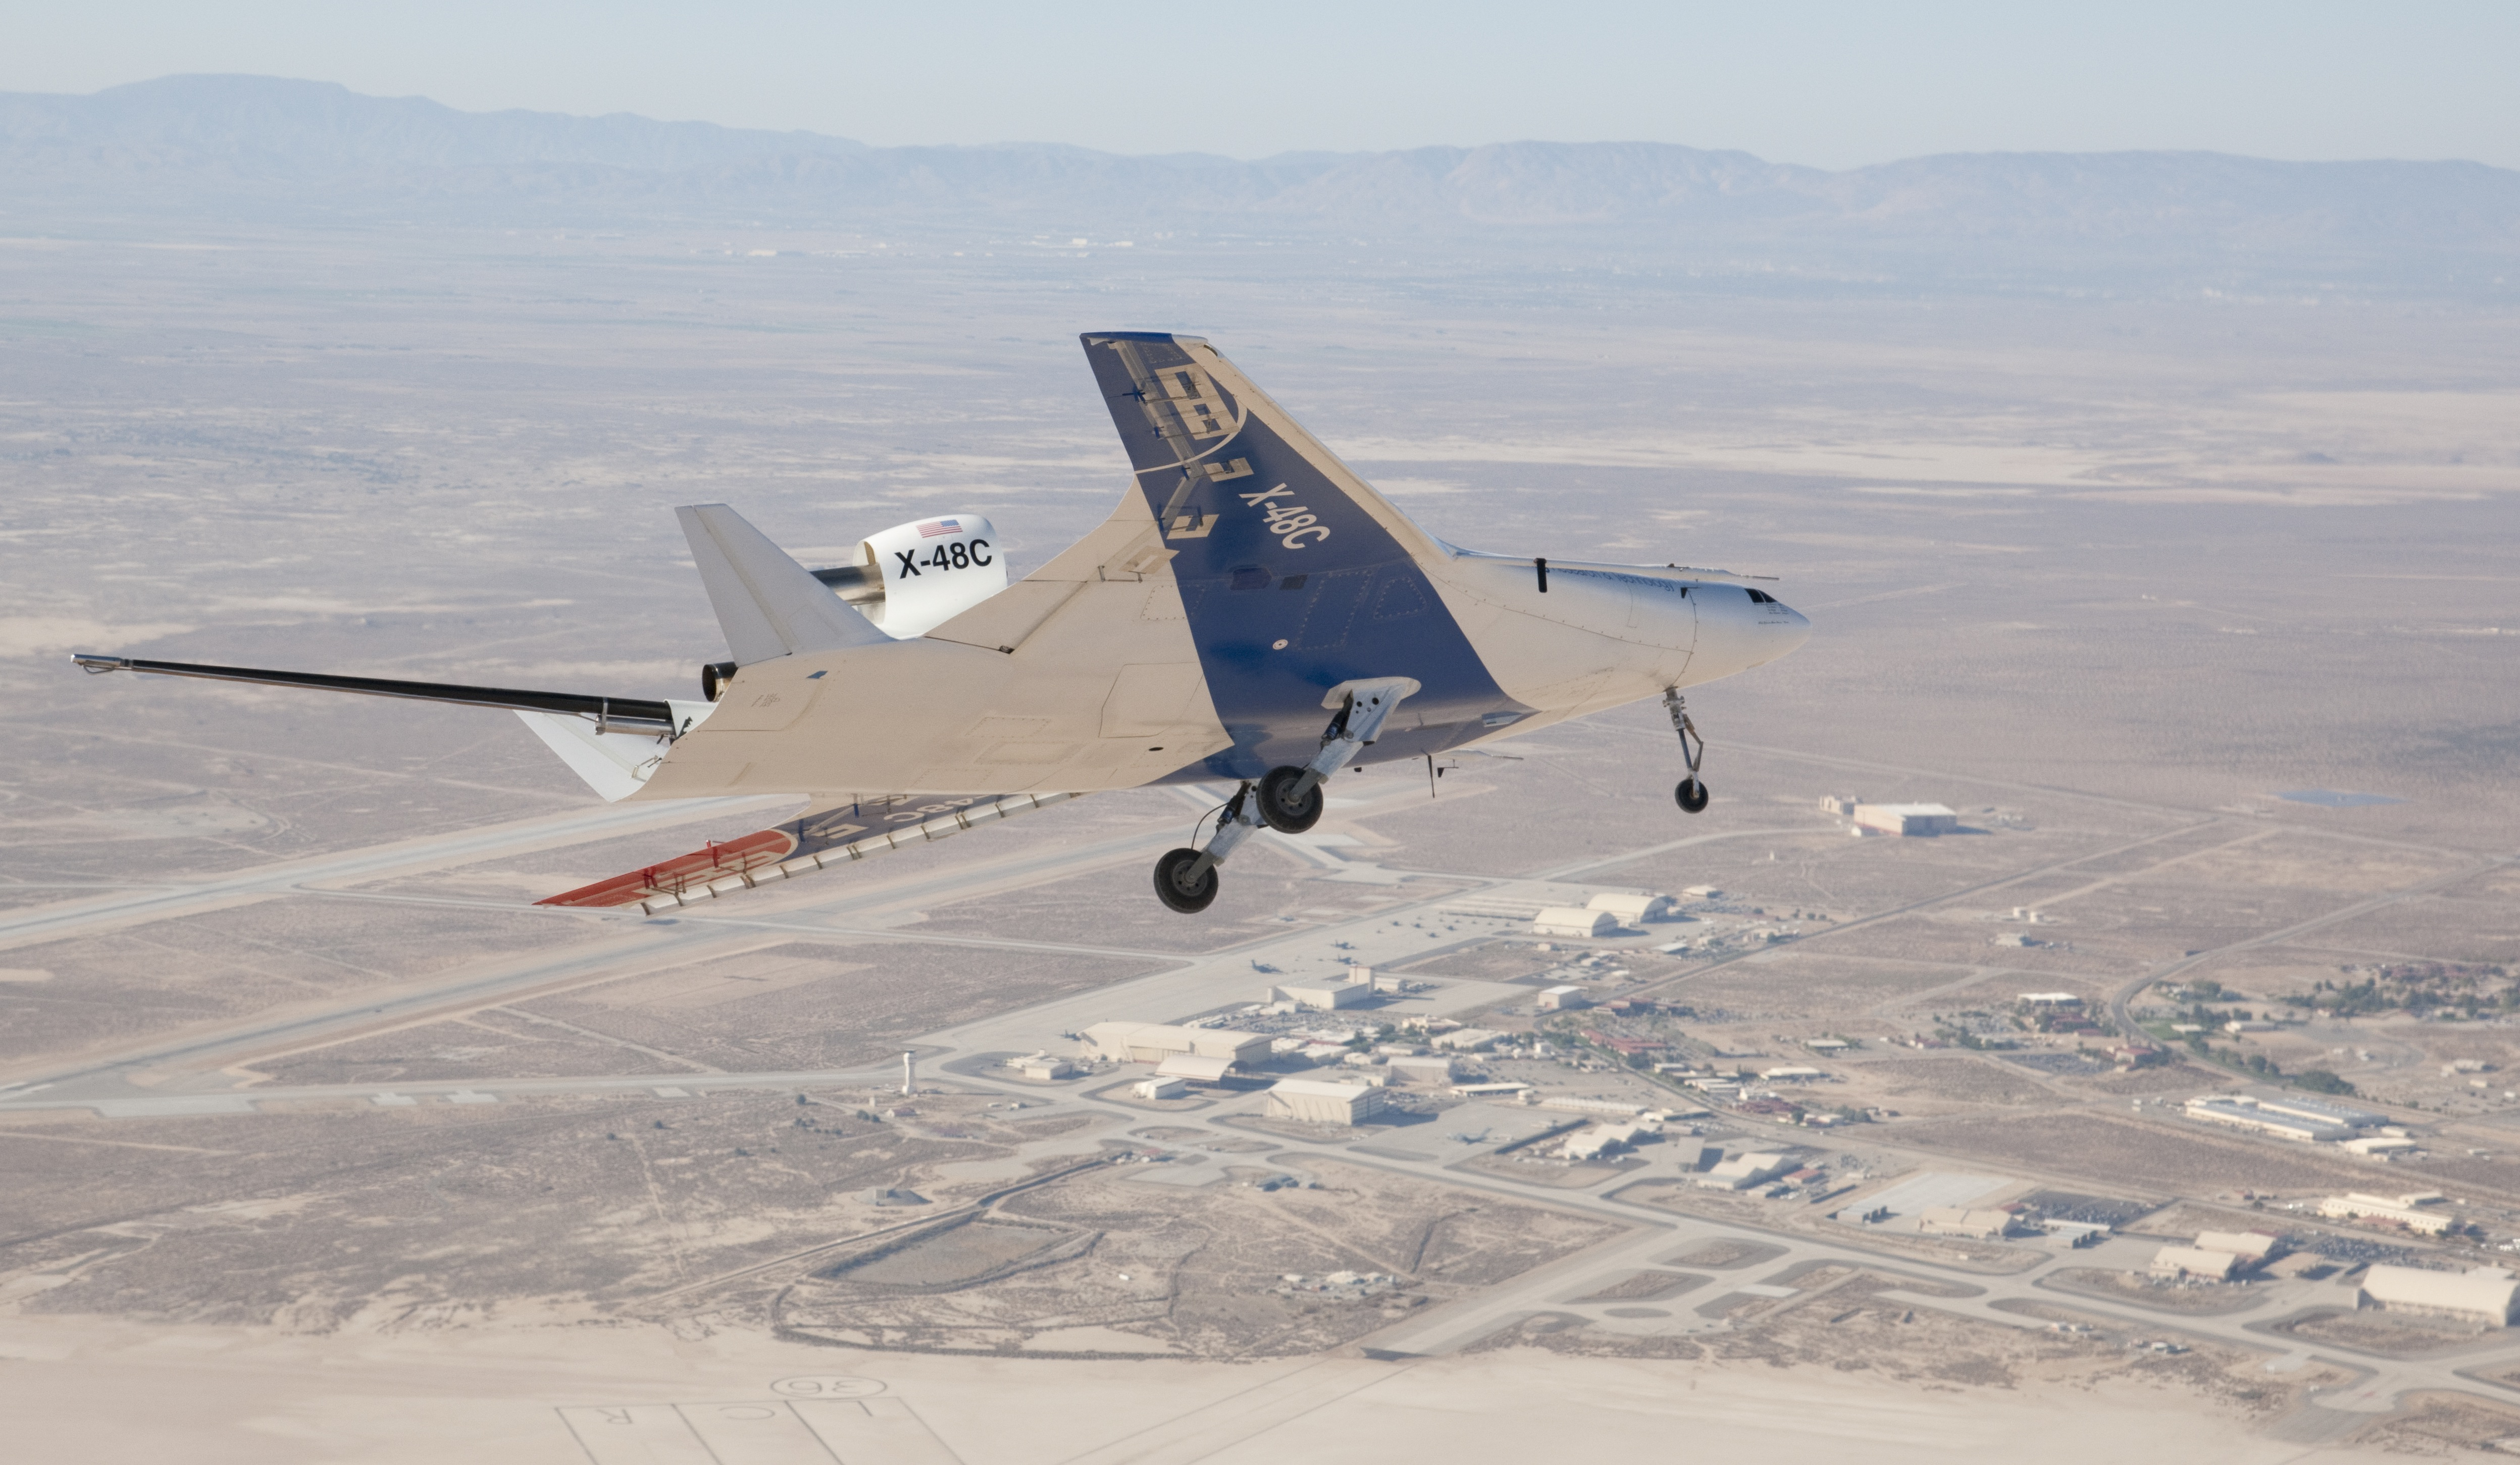 X 48 Blended Wing Body Research Aircraft Makes 100th Test